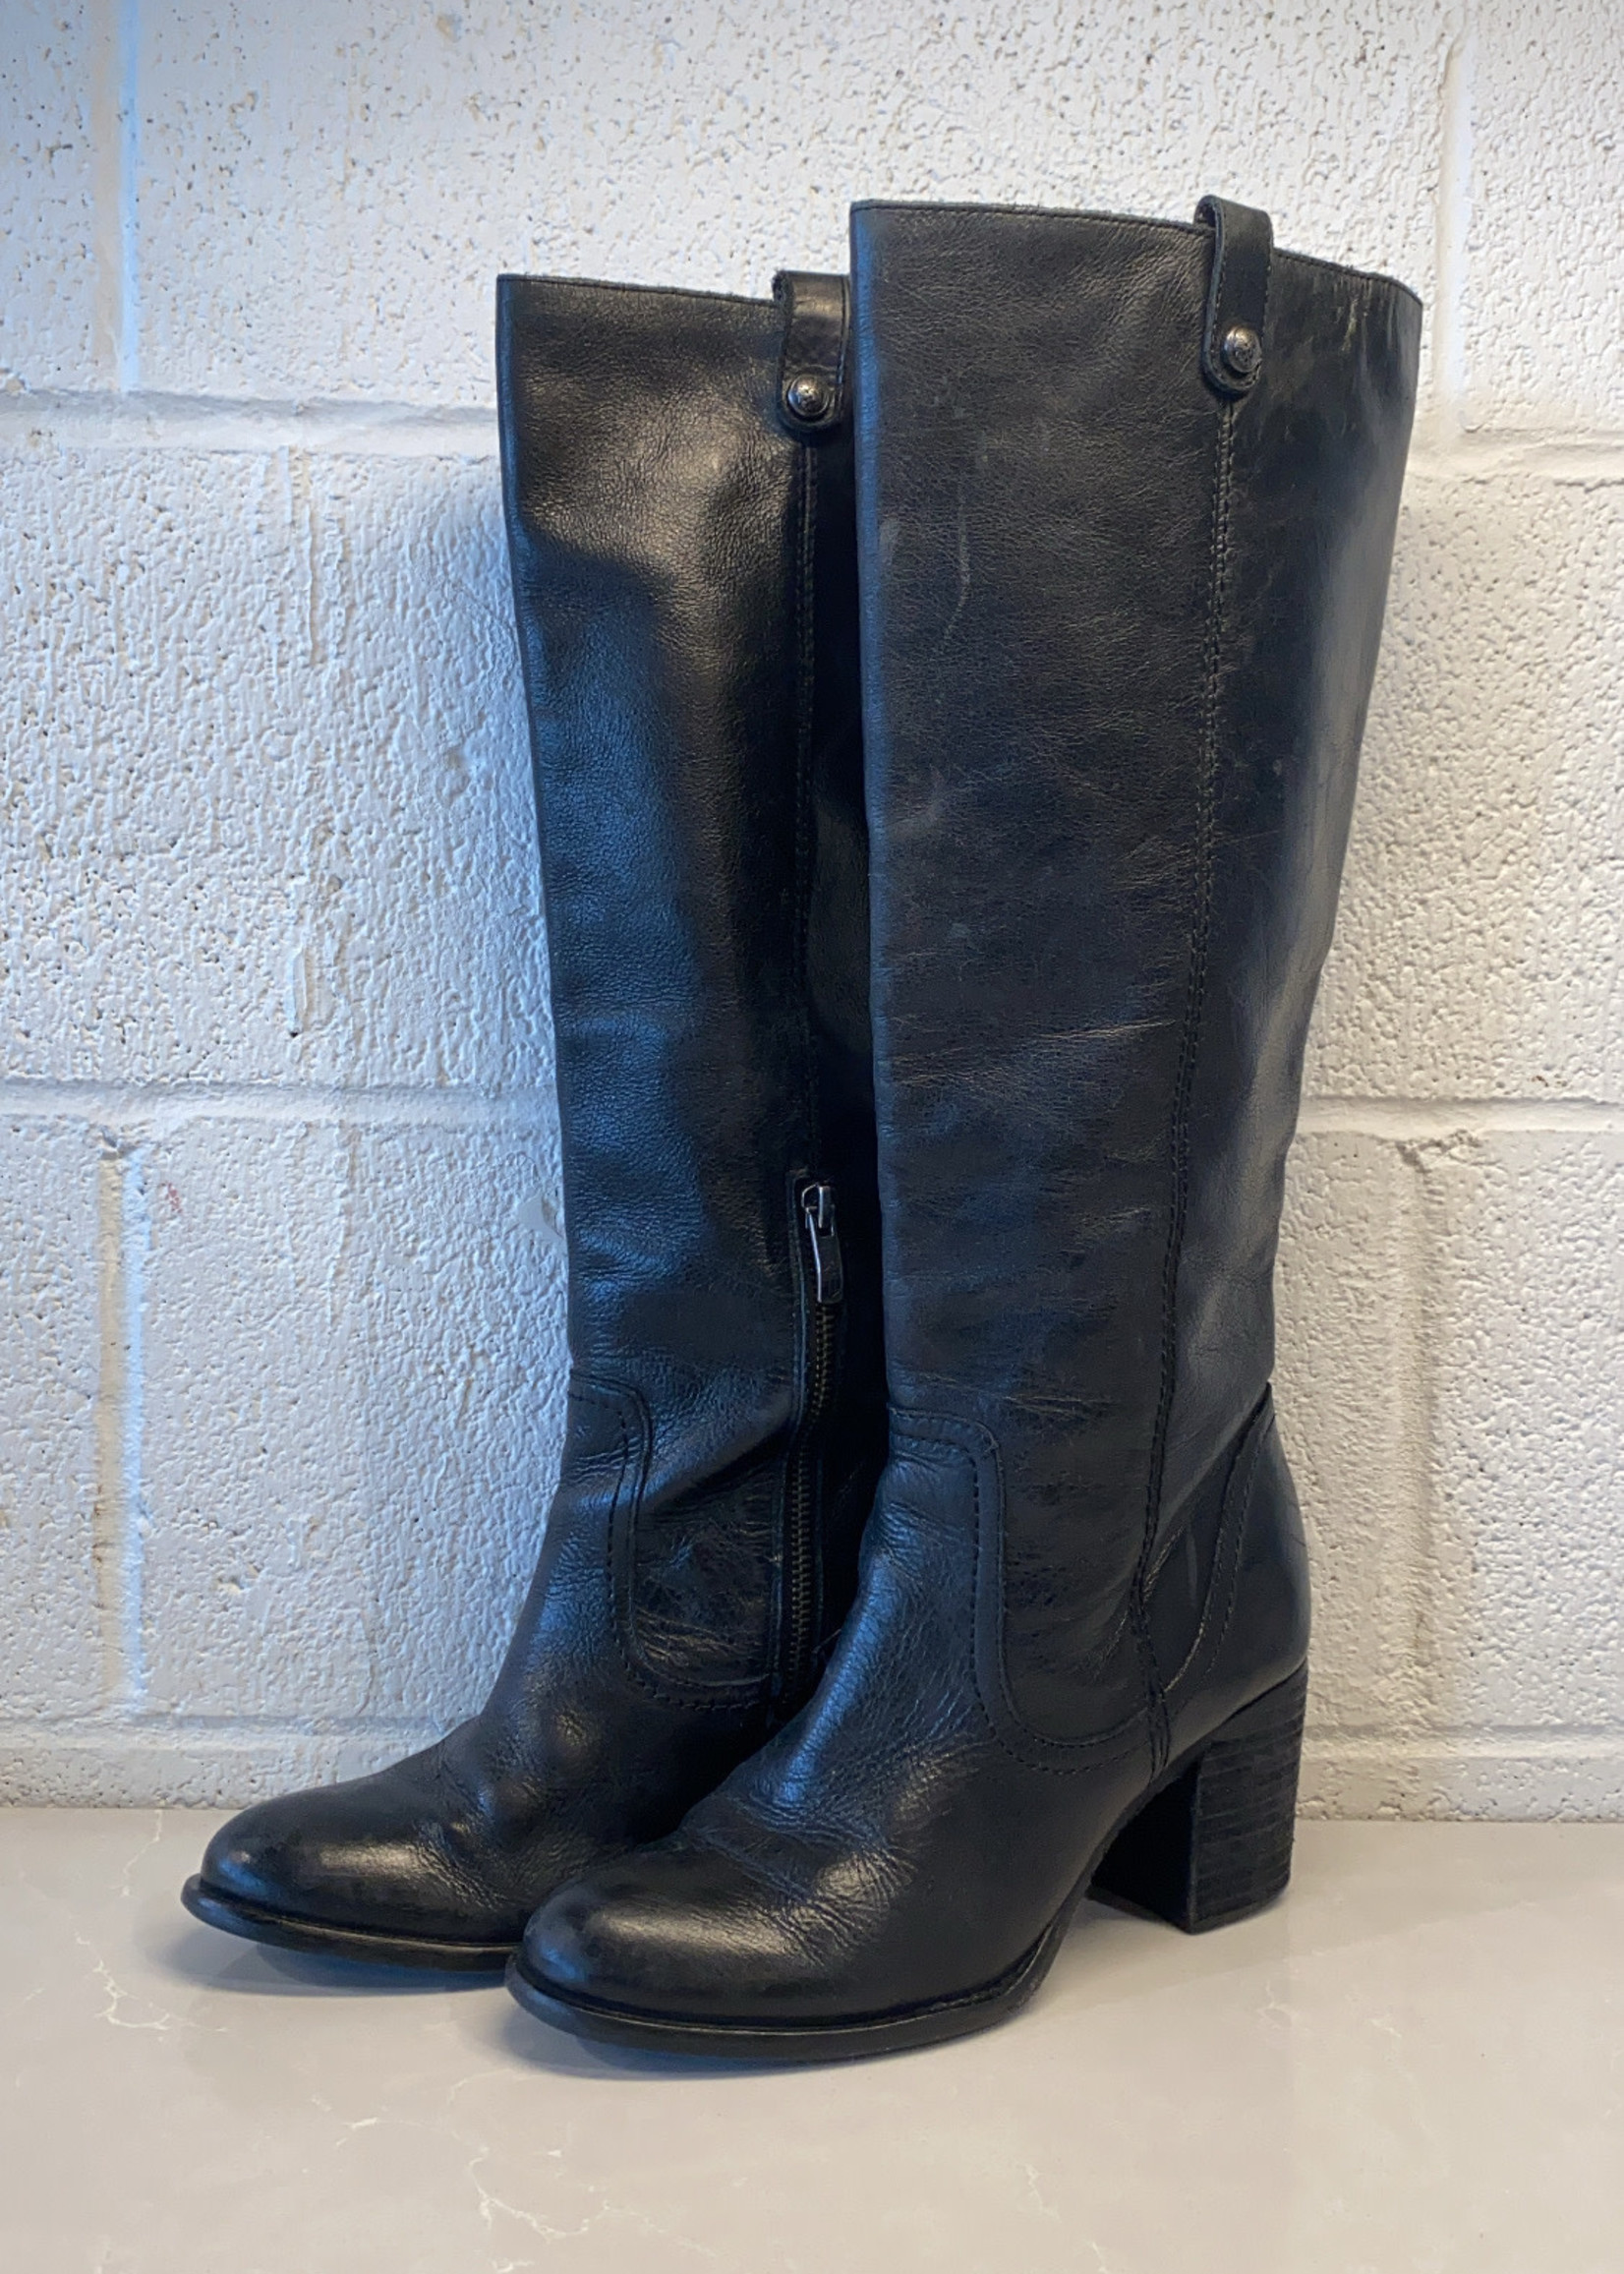 Vince Camuto Black Leather Heeled Boots 7